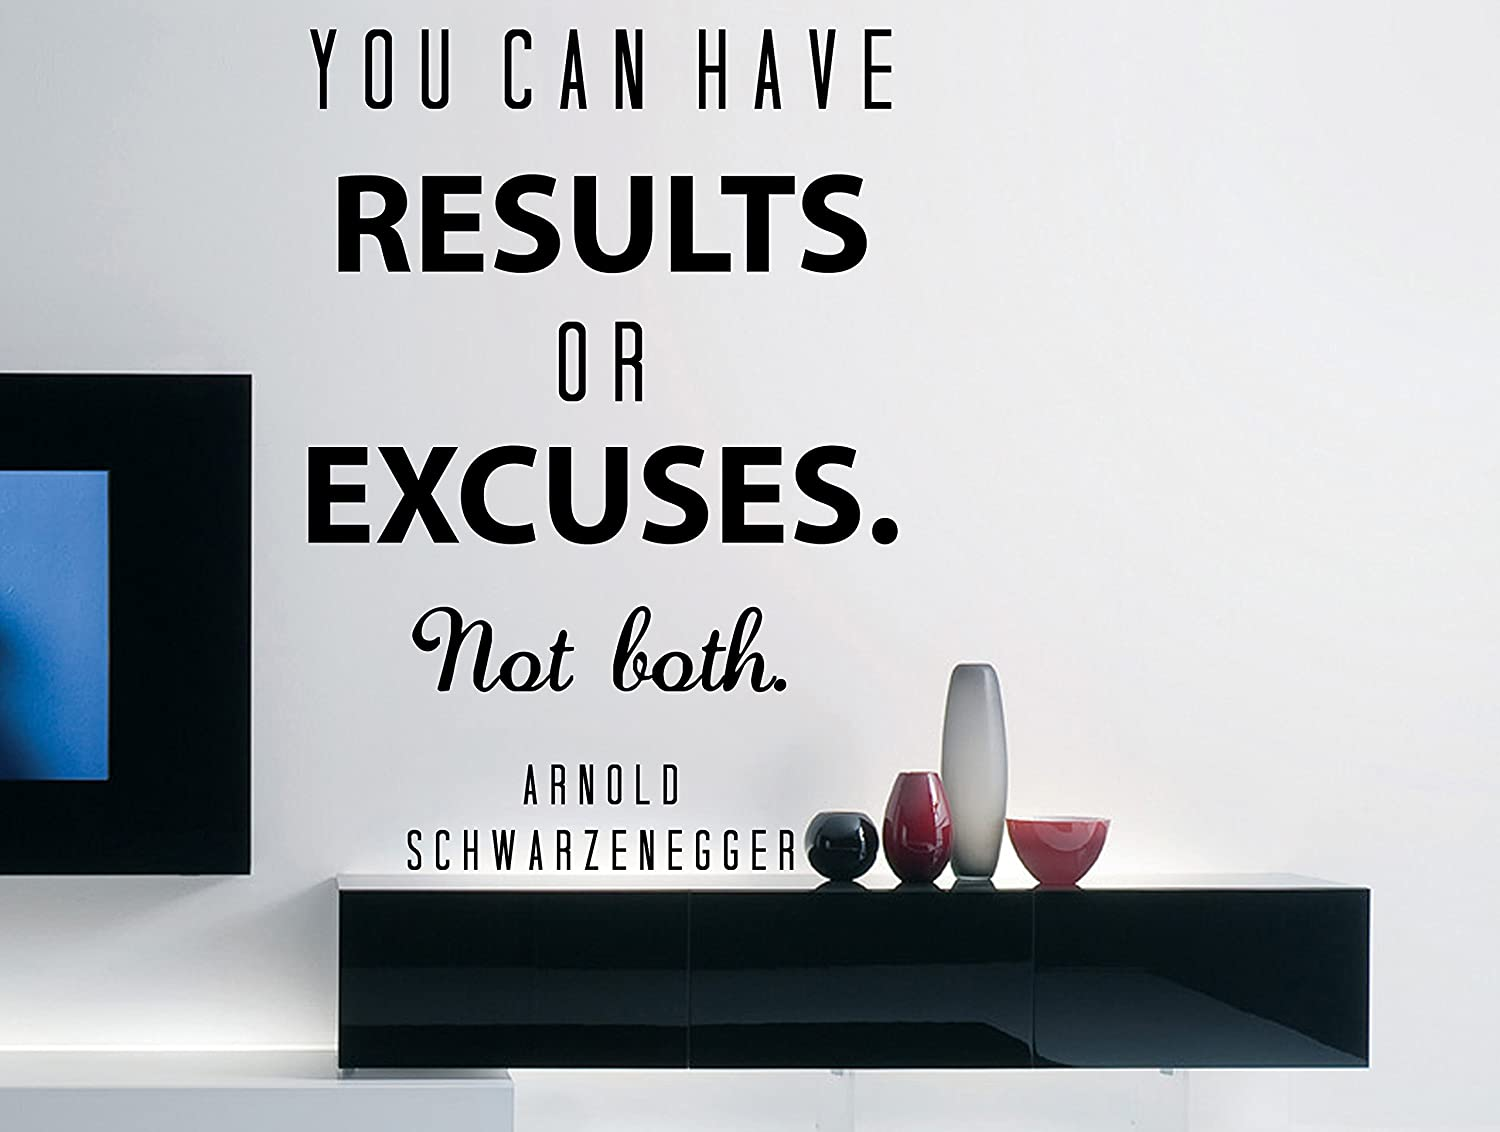 Amazon arnold schwarzenegger quote inspirational motivational amazon arnold schwarzenegger quote inspirational motivational wall decal home dcor you can have results or excuses 17x25 inches home kitchen amipublicfo Image collections